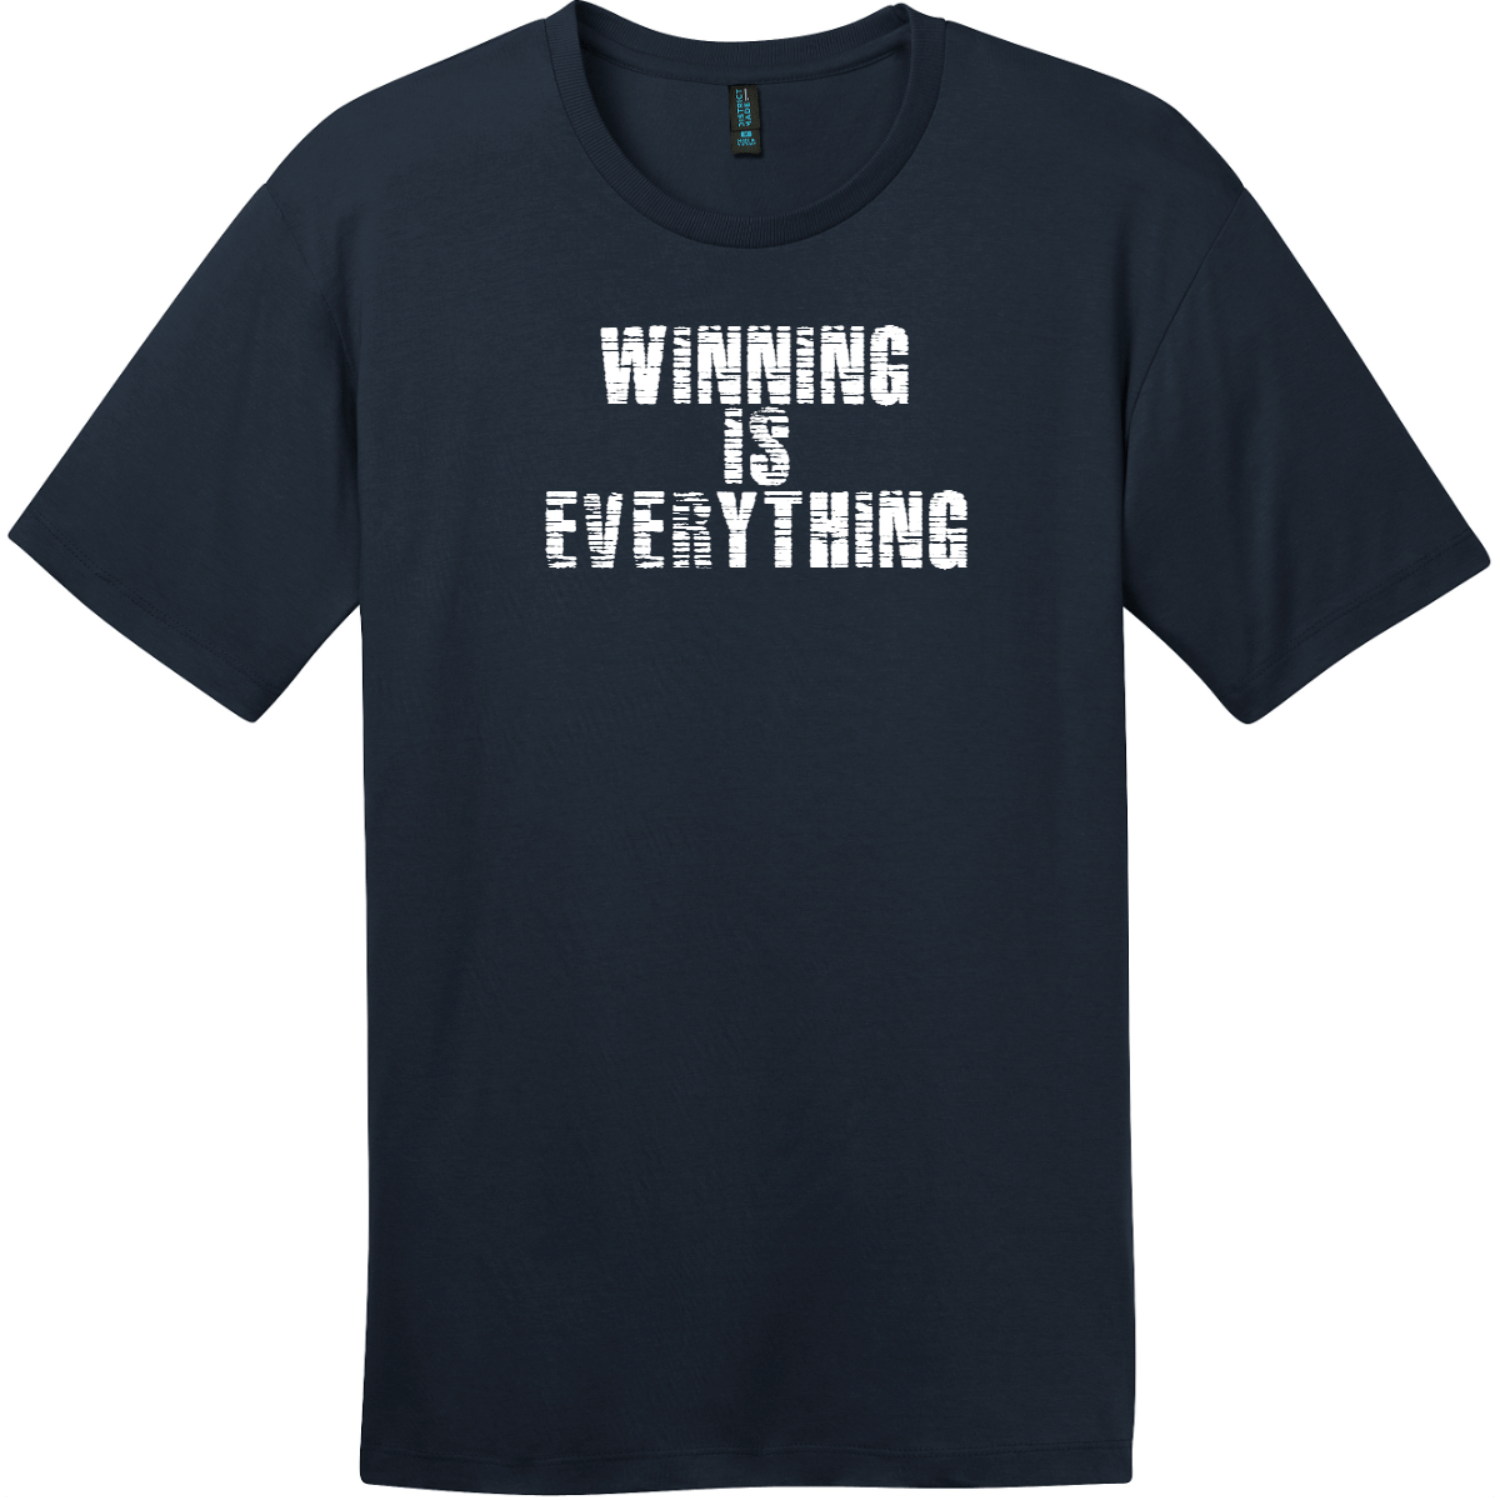 Winning Is Everything T-Shirt New Navy District Perfect Weight Tee DT104